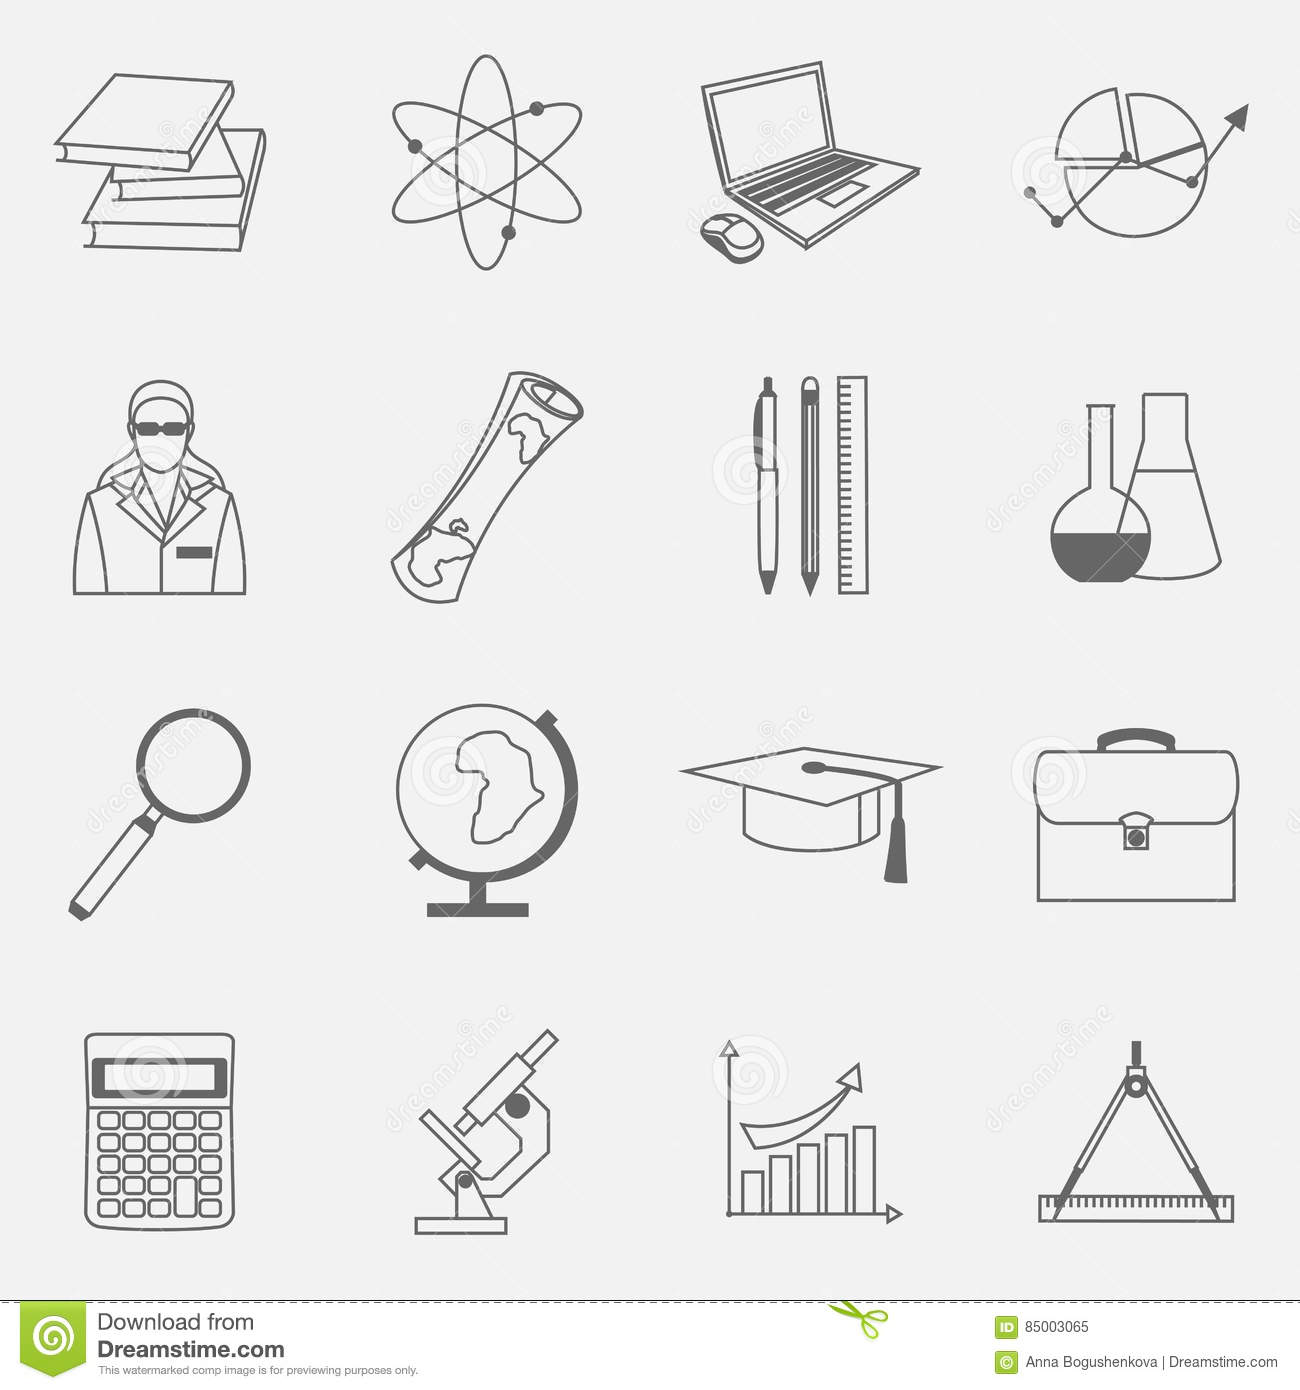 collection educator essay learning learning science science science The science of learning has made a considerable contribution to our understanding of effective teaching and learning strategies however, few instructors outside of the field are privy to this research.